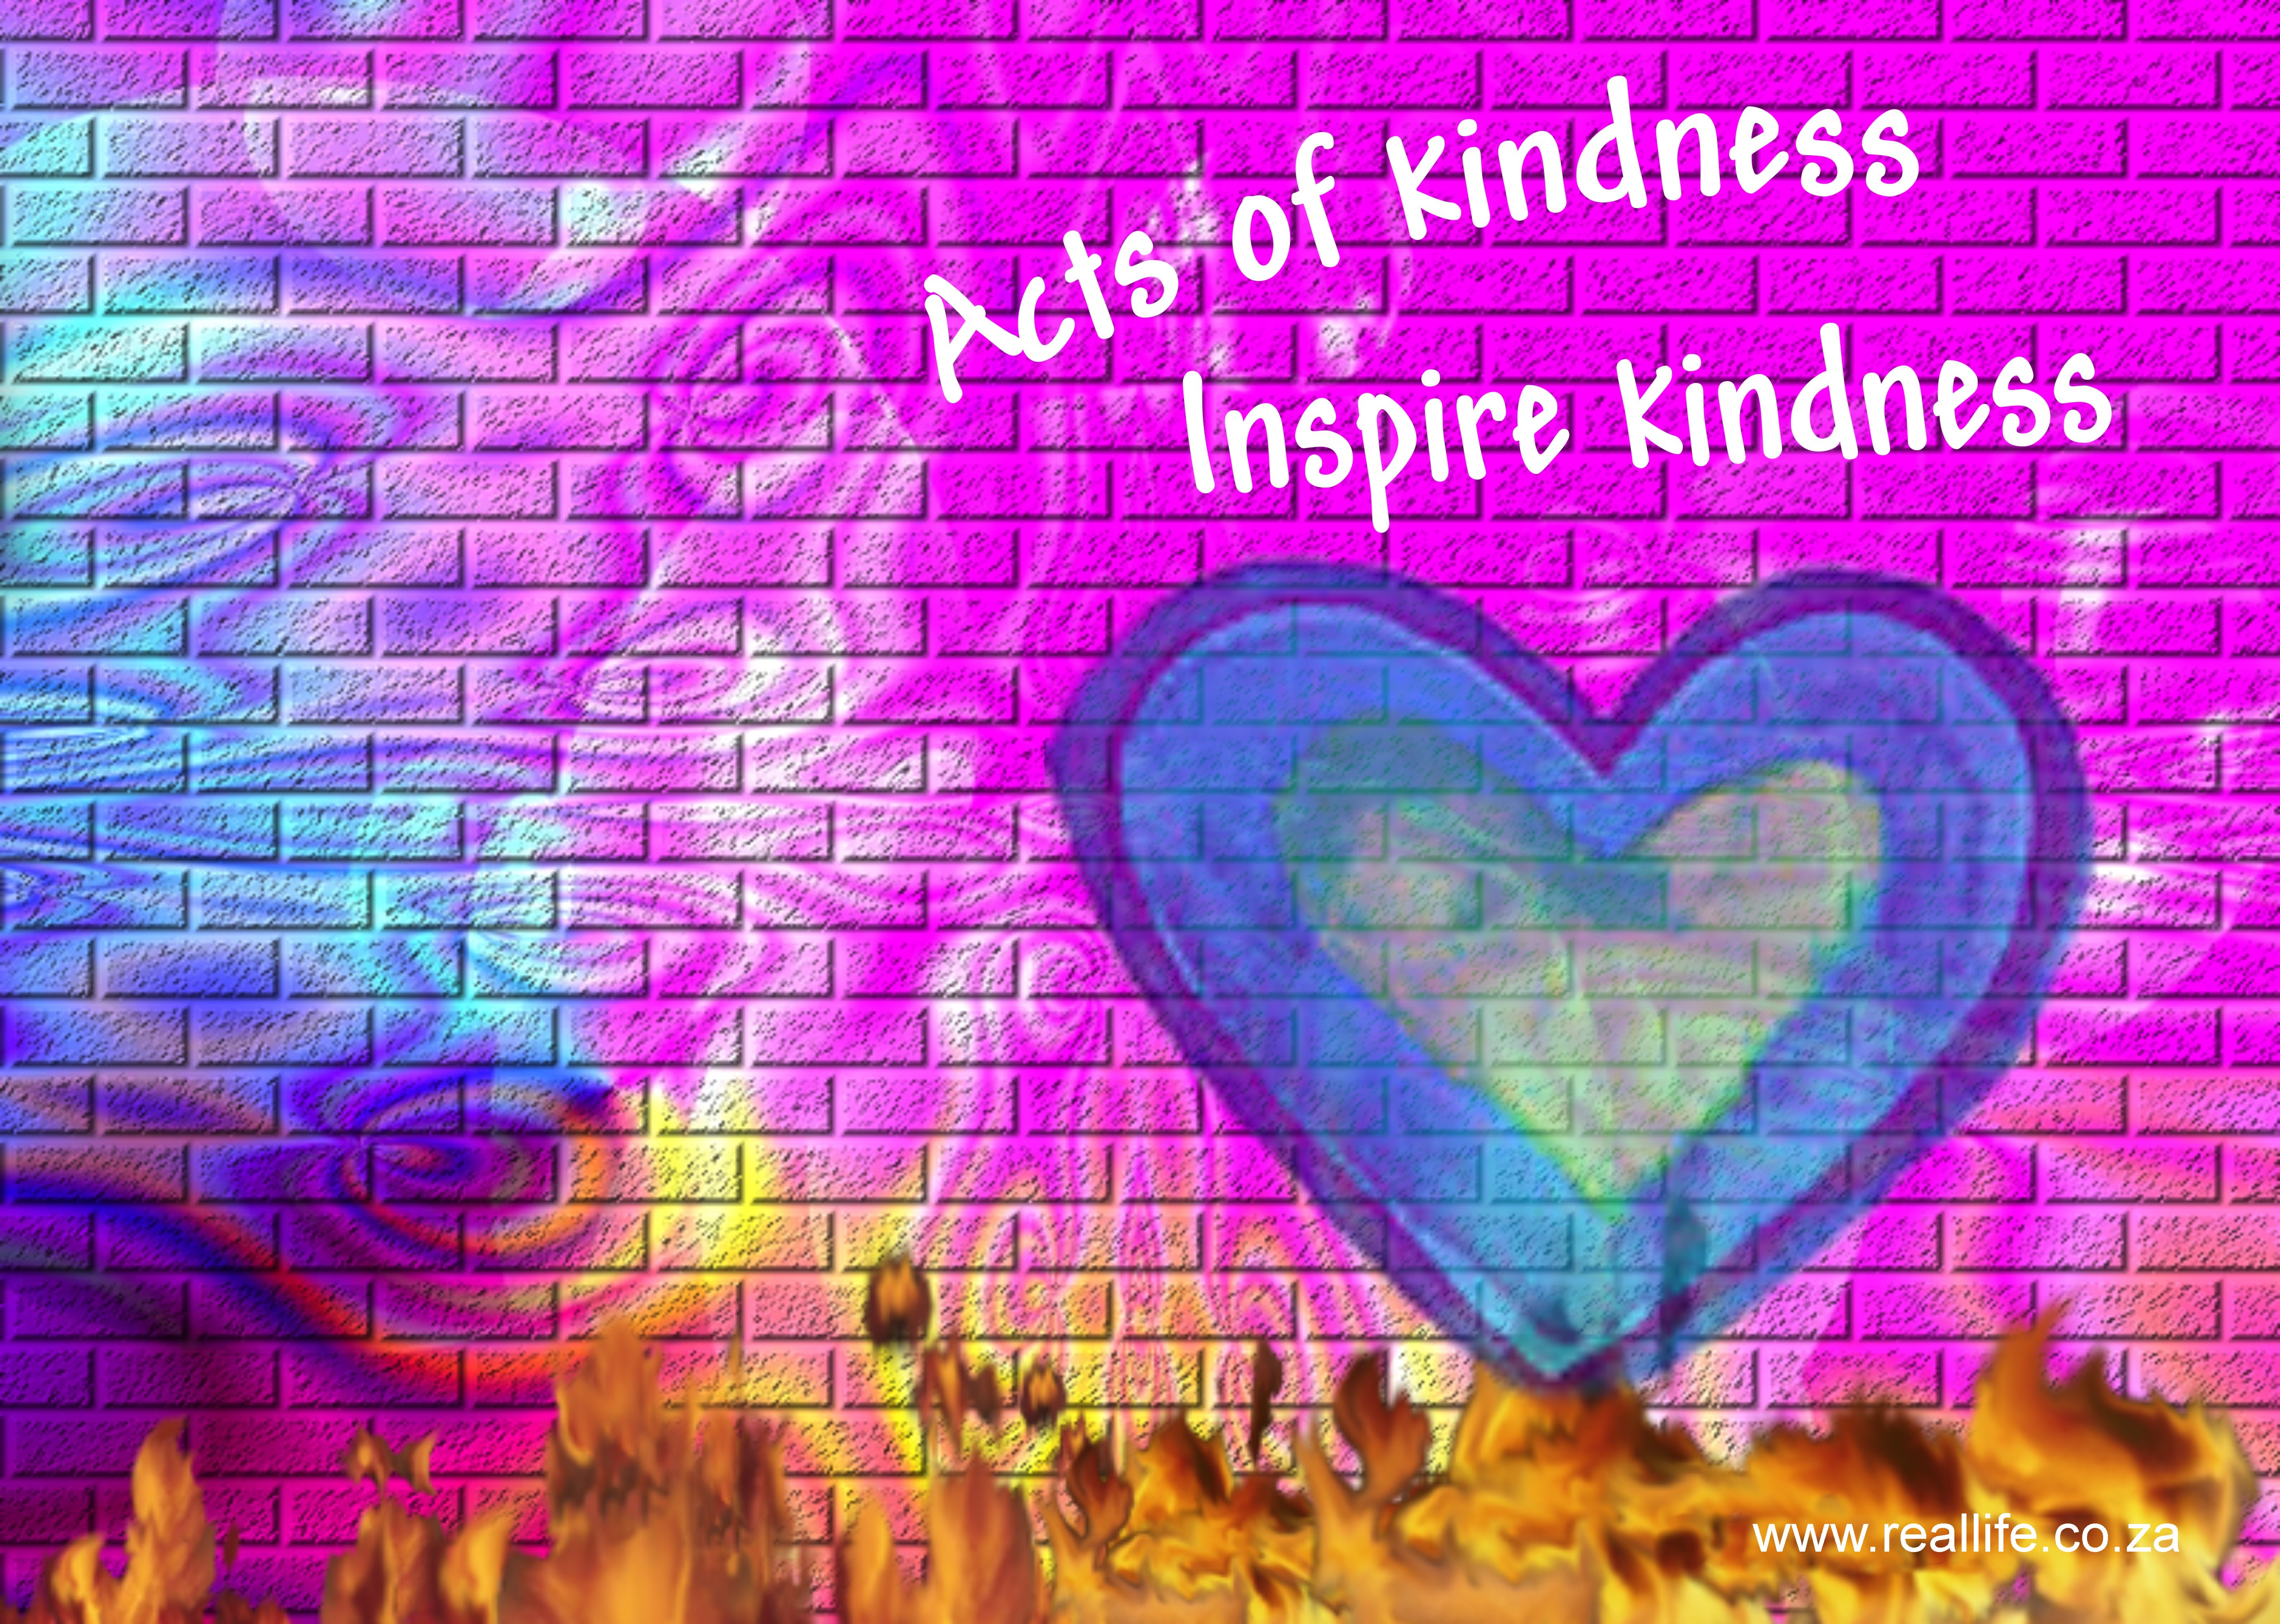 12 selfish and powerful acts of kindness